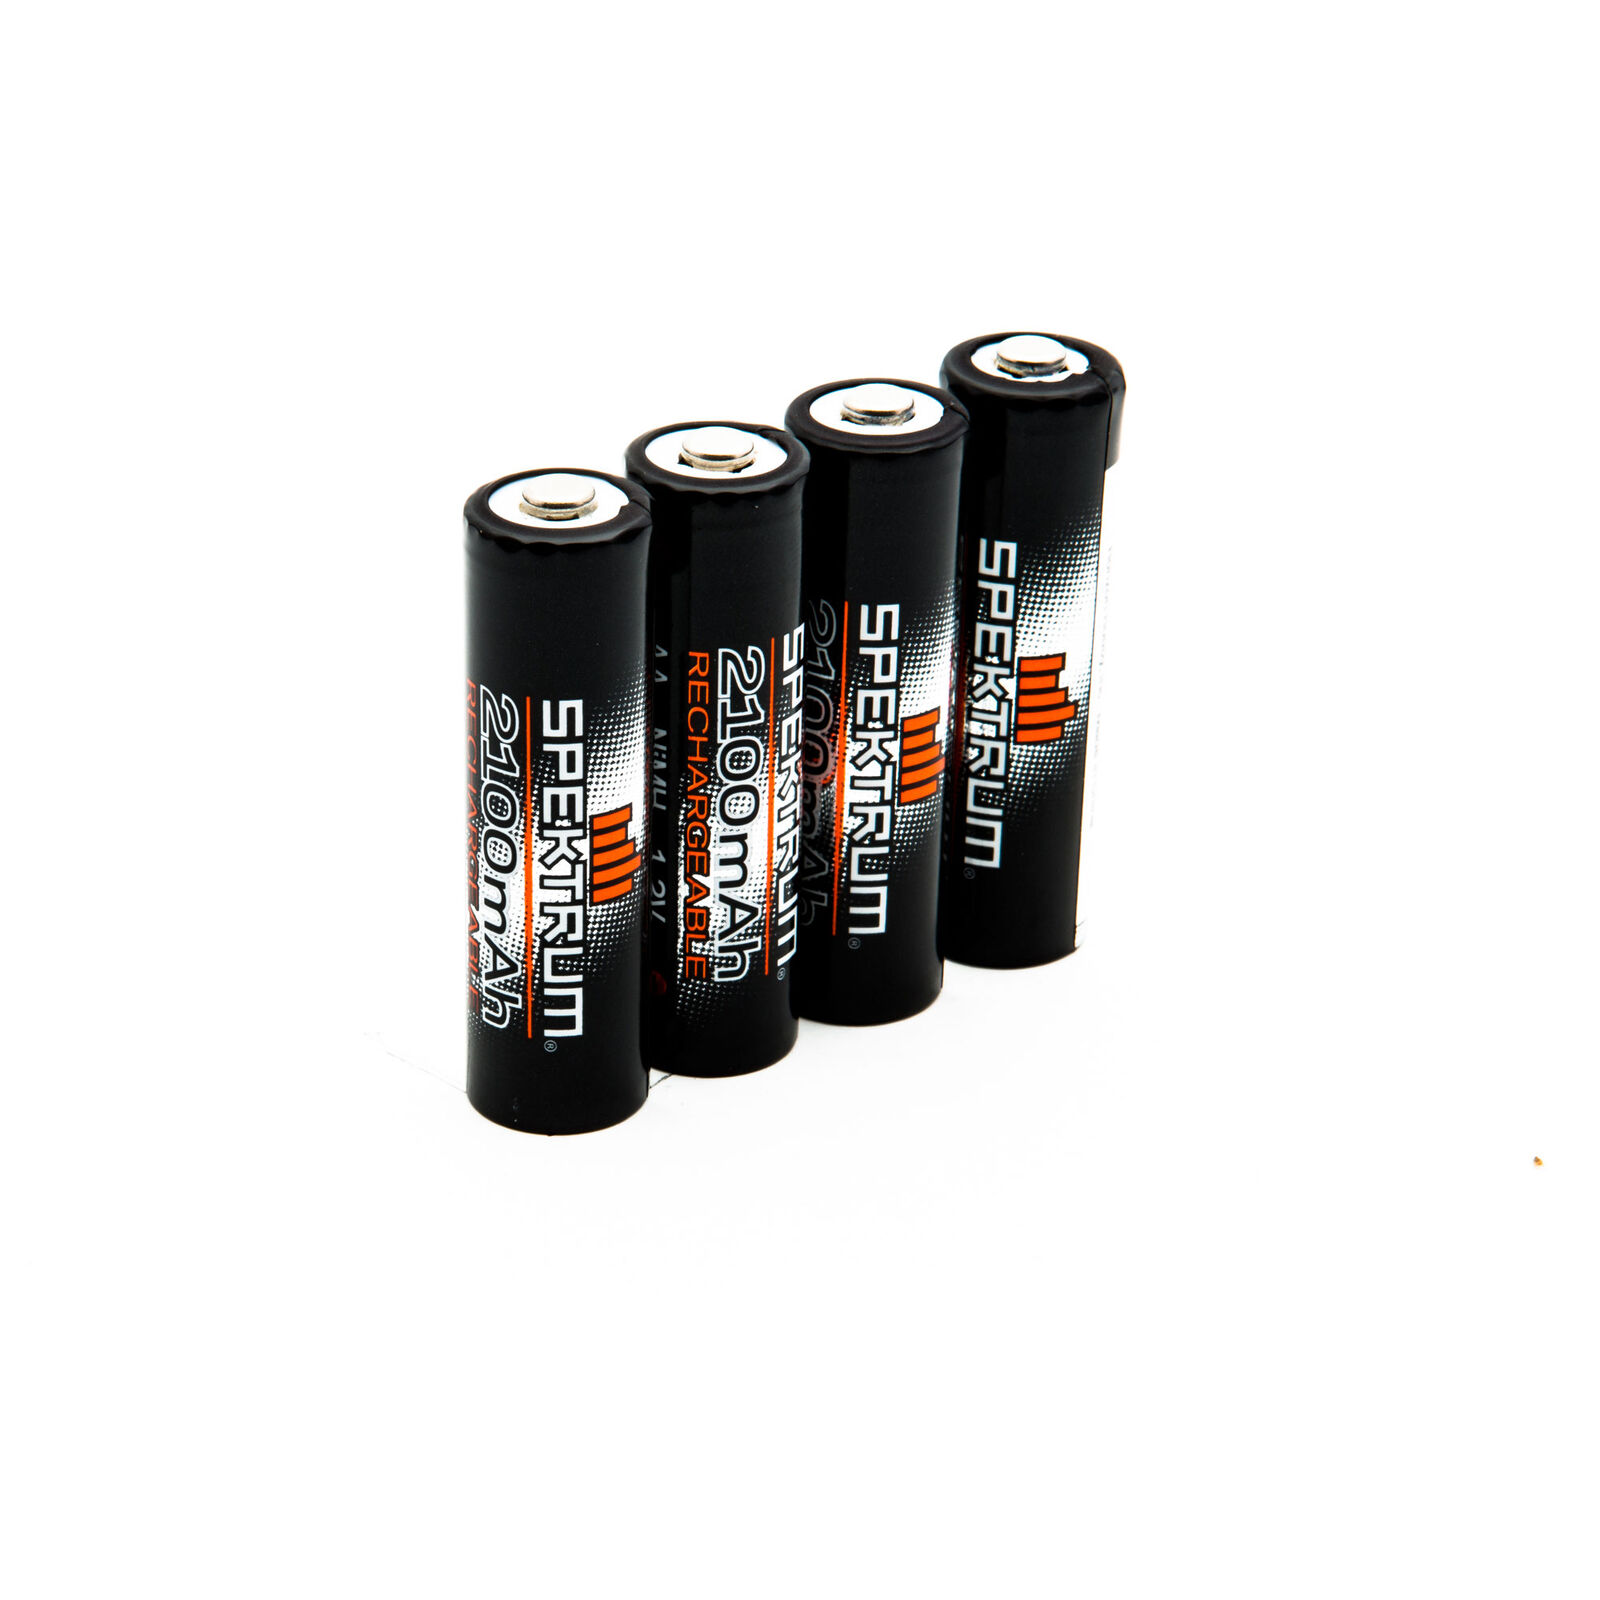 1.2V 2100mAh AA NiMH Batteries (4)